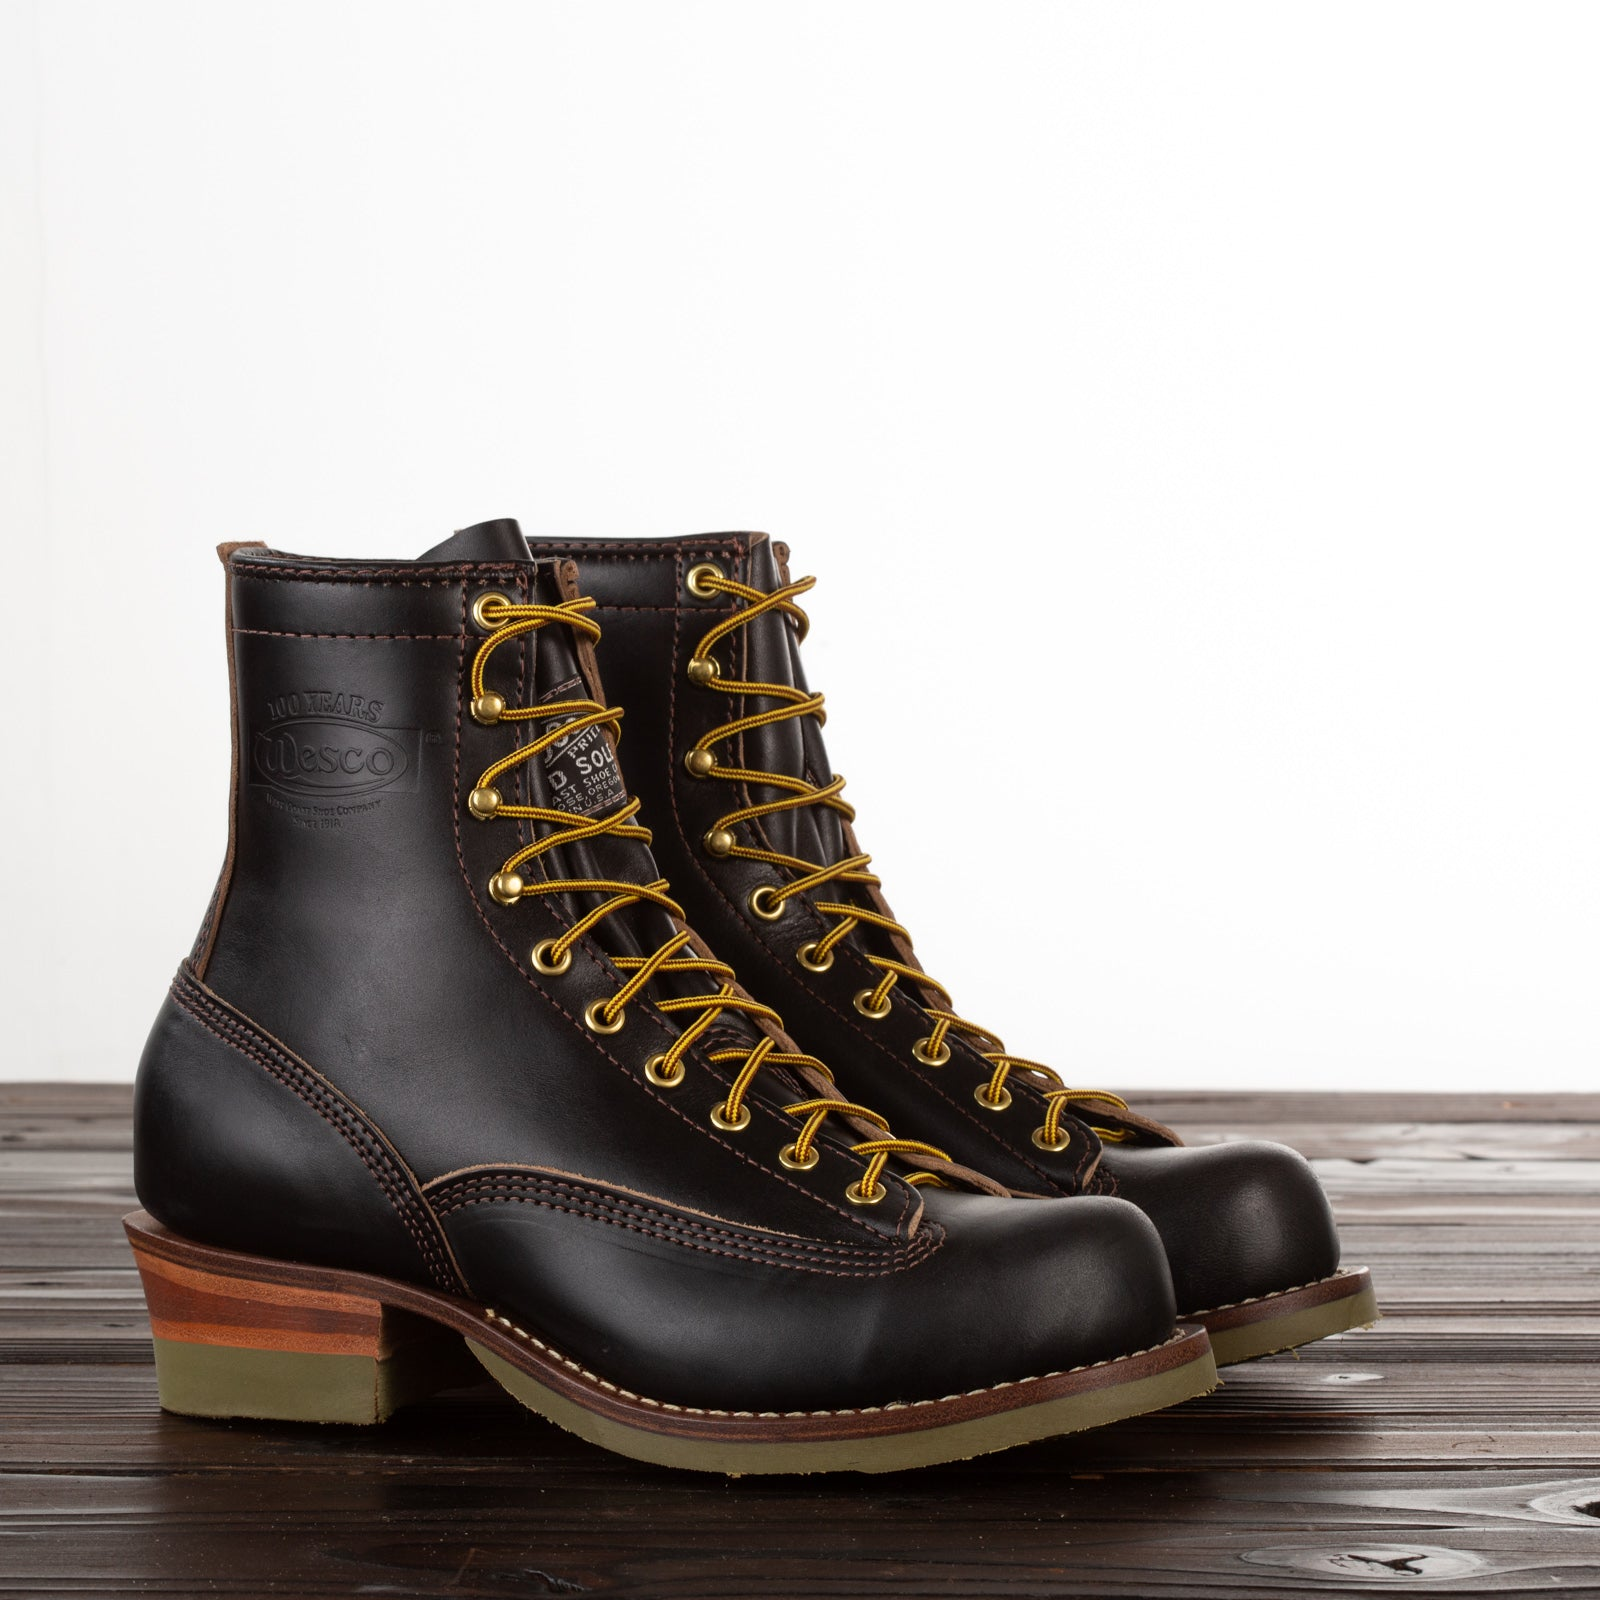 united states release info on great prices 38LTT 100th Anniversary Lace to Toe Jobmaster - Black Horsehide